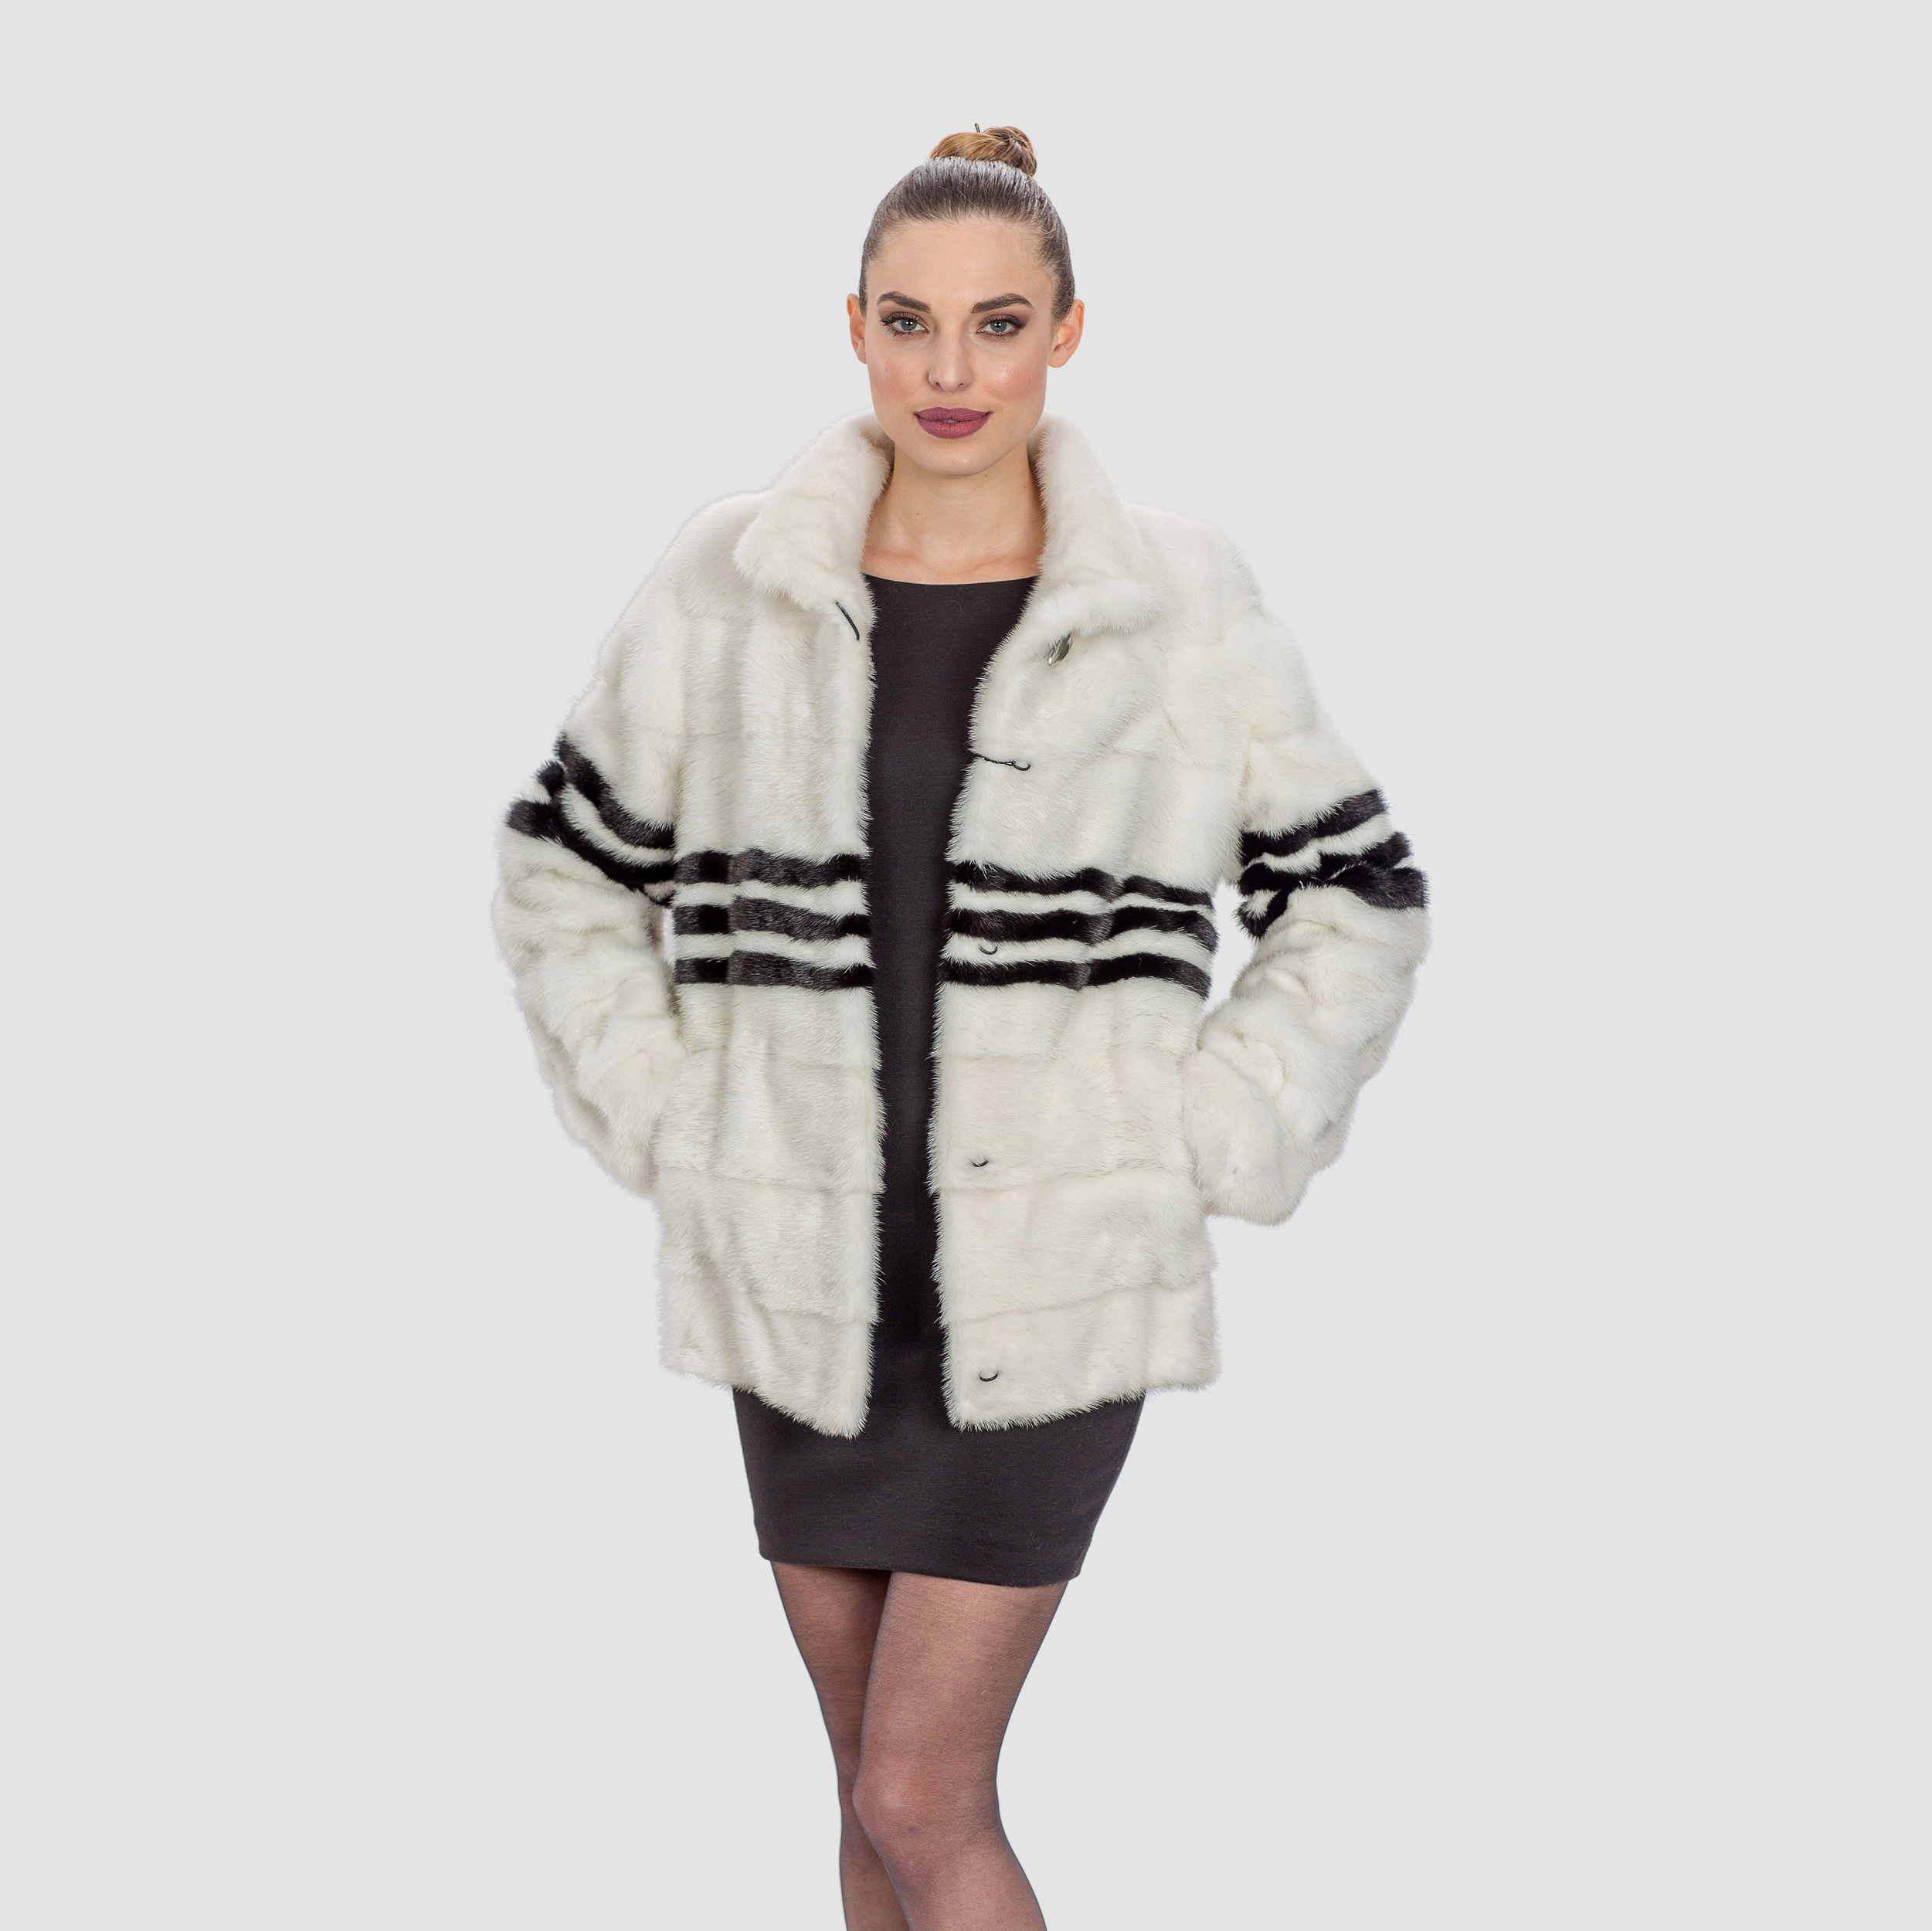 White Mink Fur Jacket. 100% Real Fur Coats and Accessories.